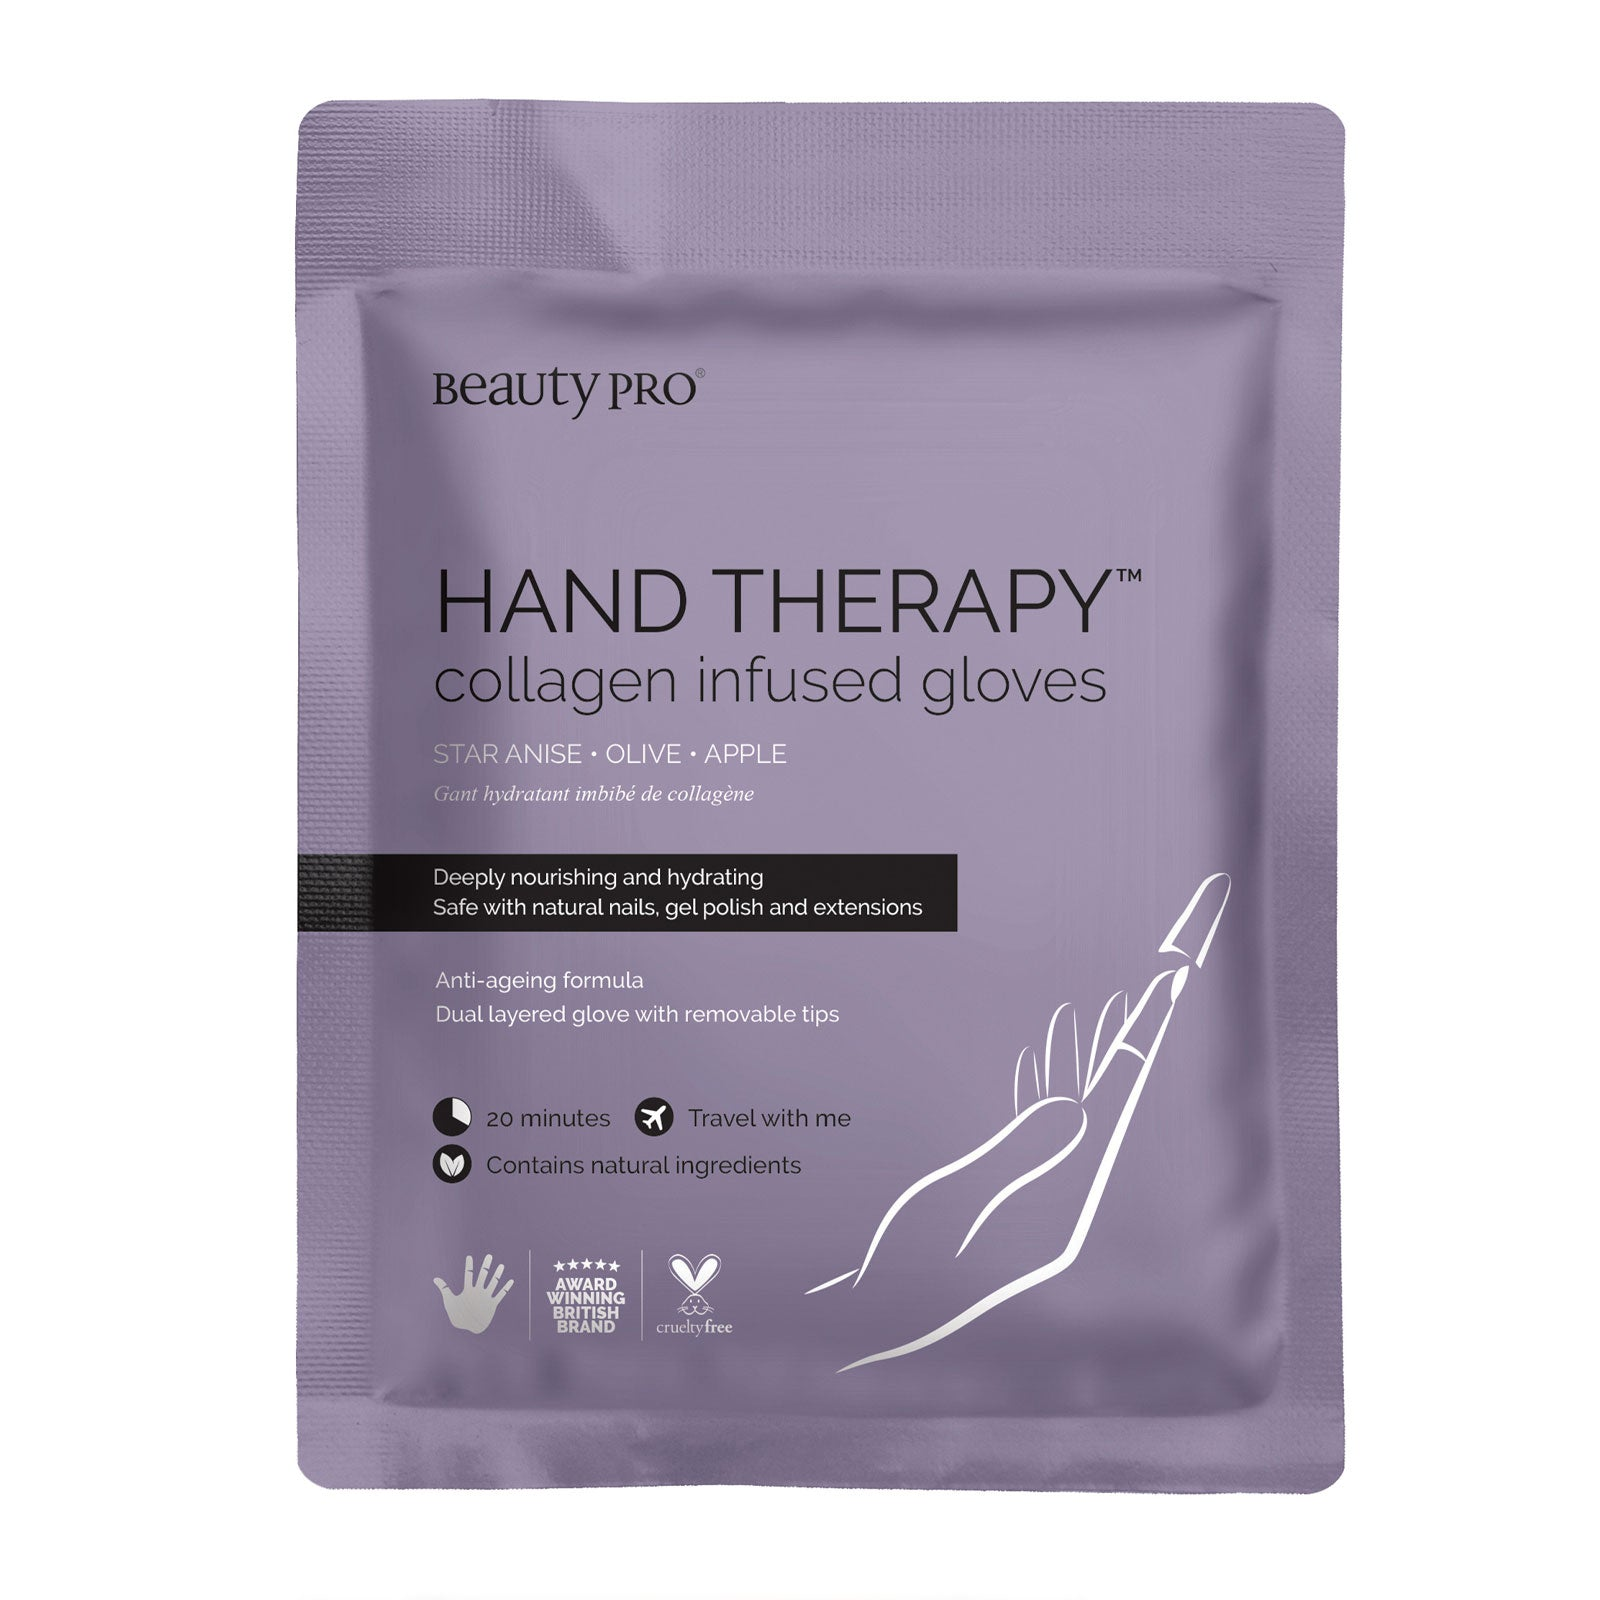 BeautyPro HAND THERAPY Collagen Infused Glove with Removable Fingertips 17g